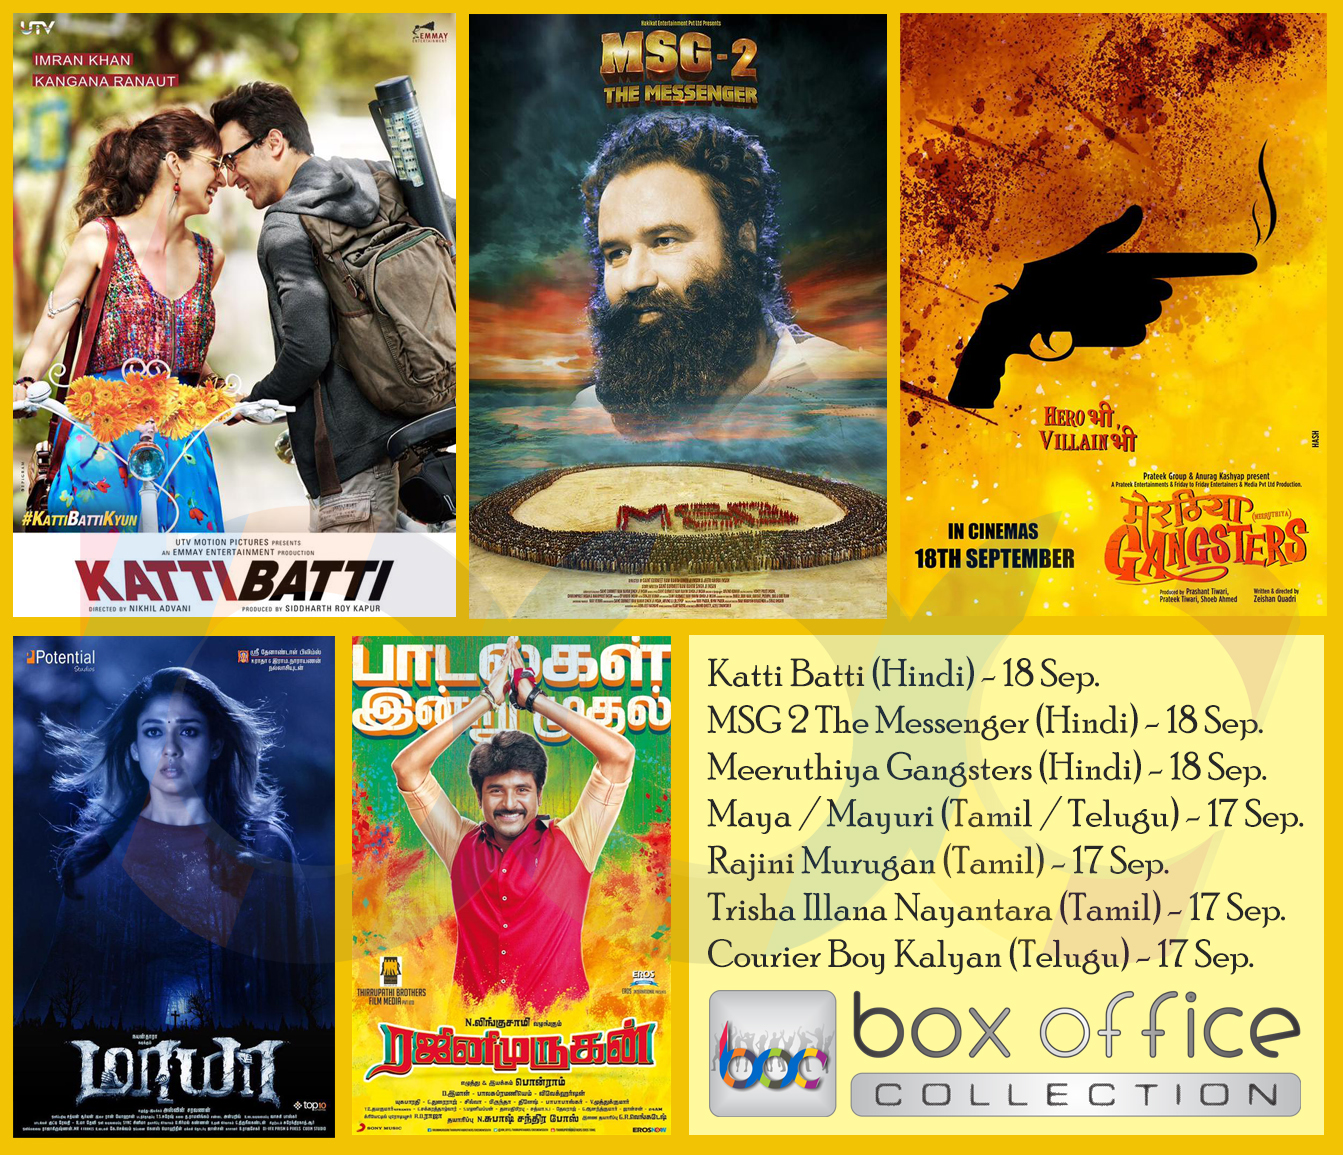 movies on 17-18 september 2015